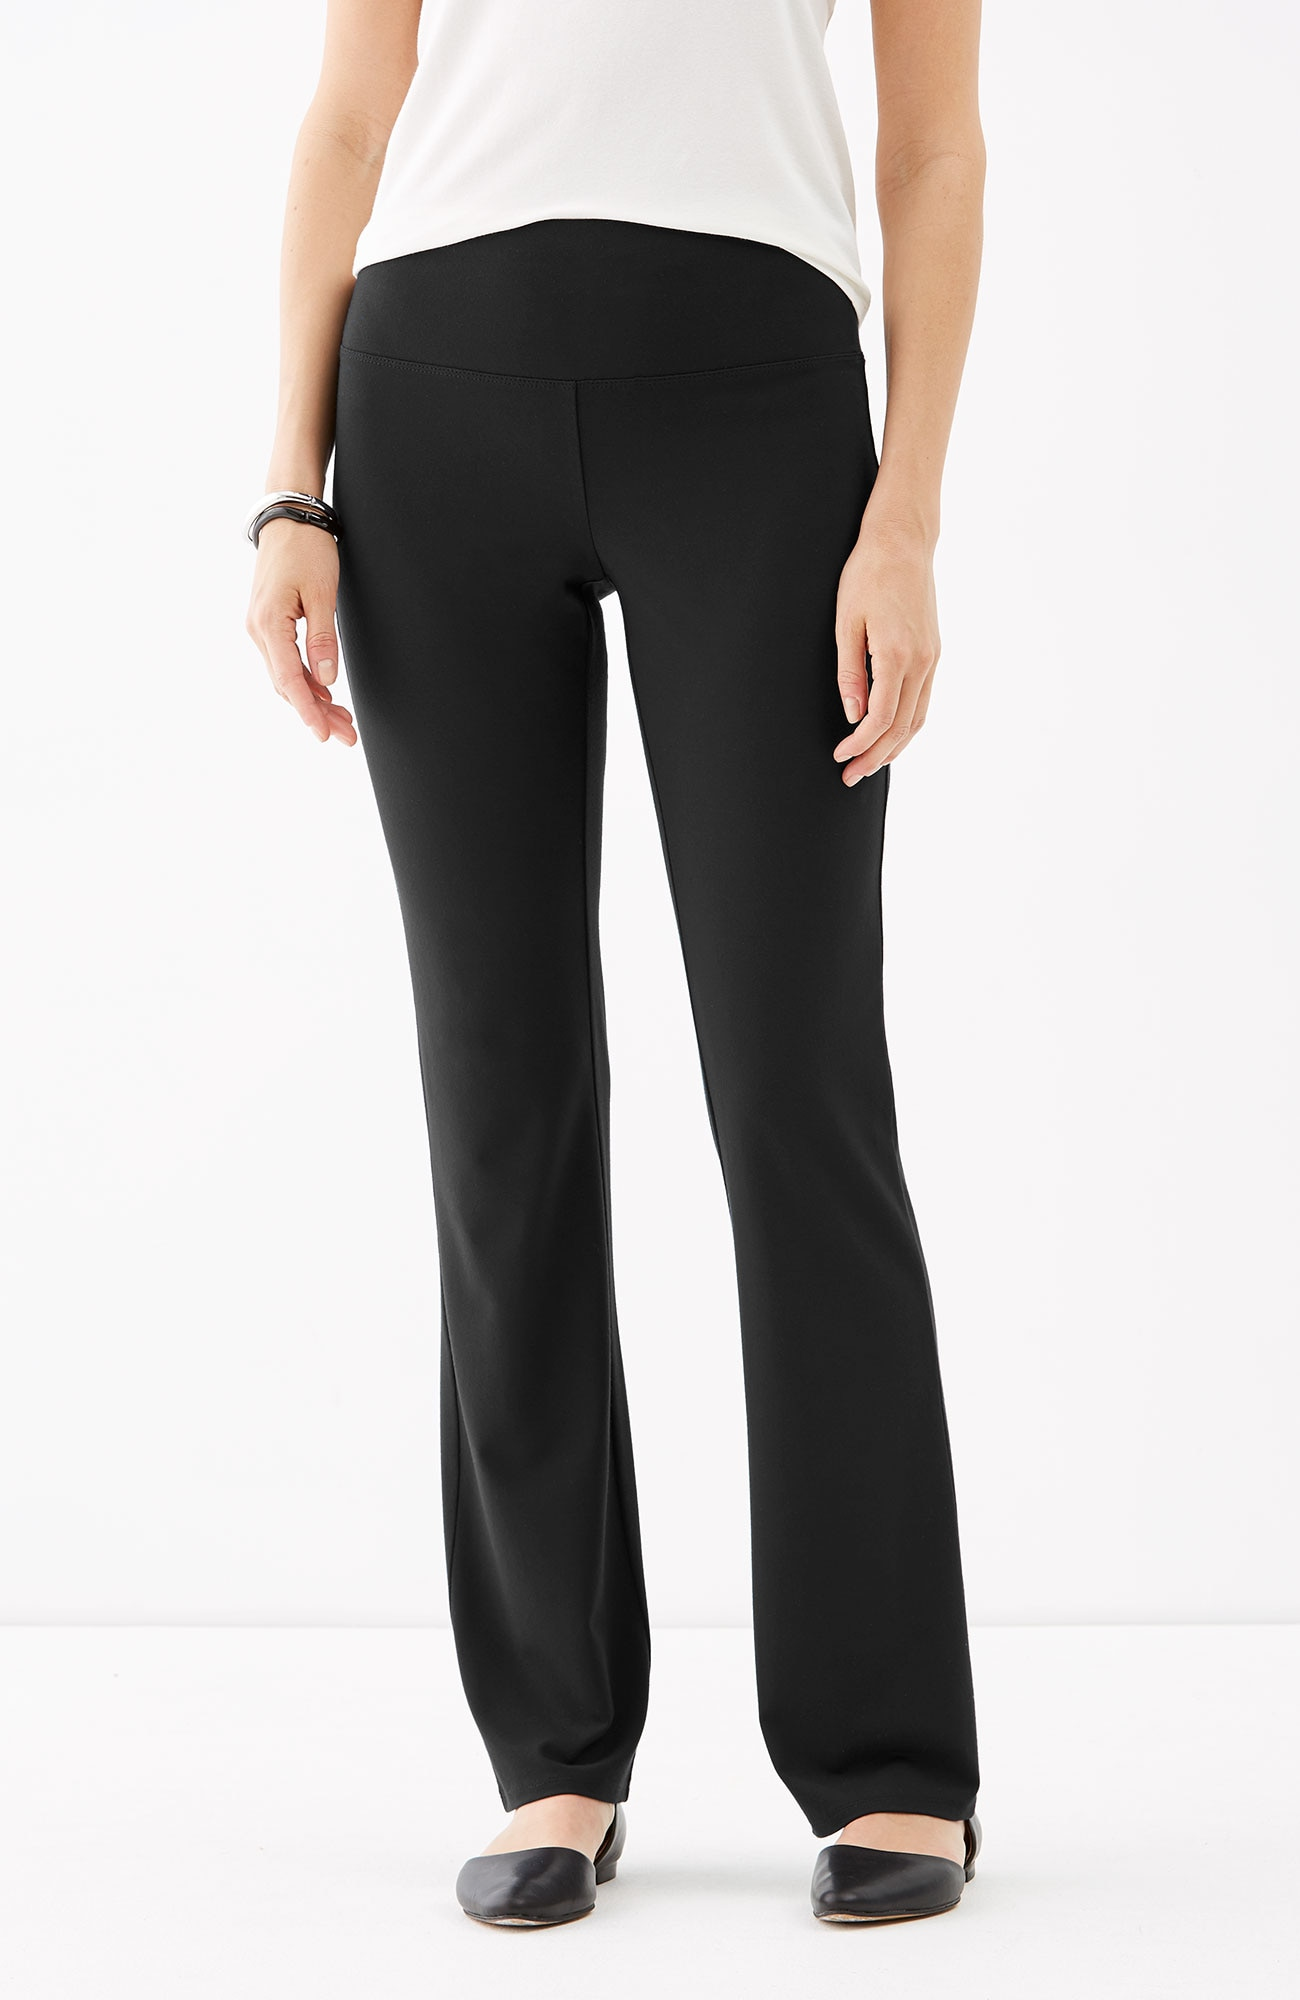 Wearever Smooth-Fit barely boot-cut pants